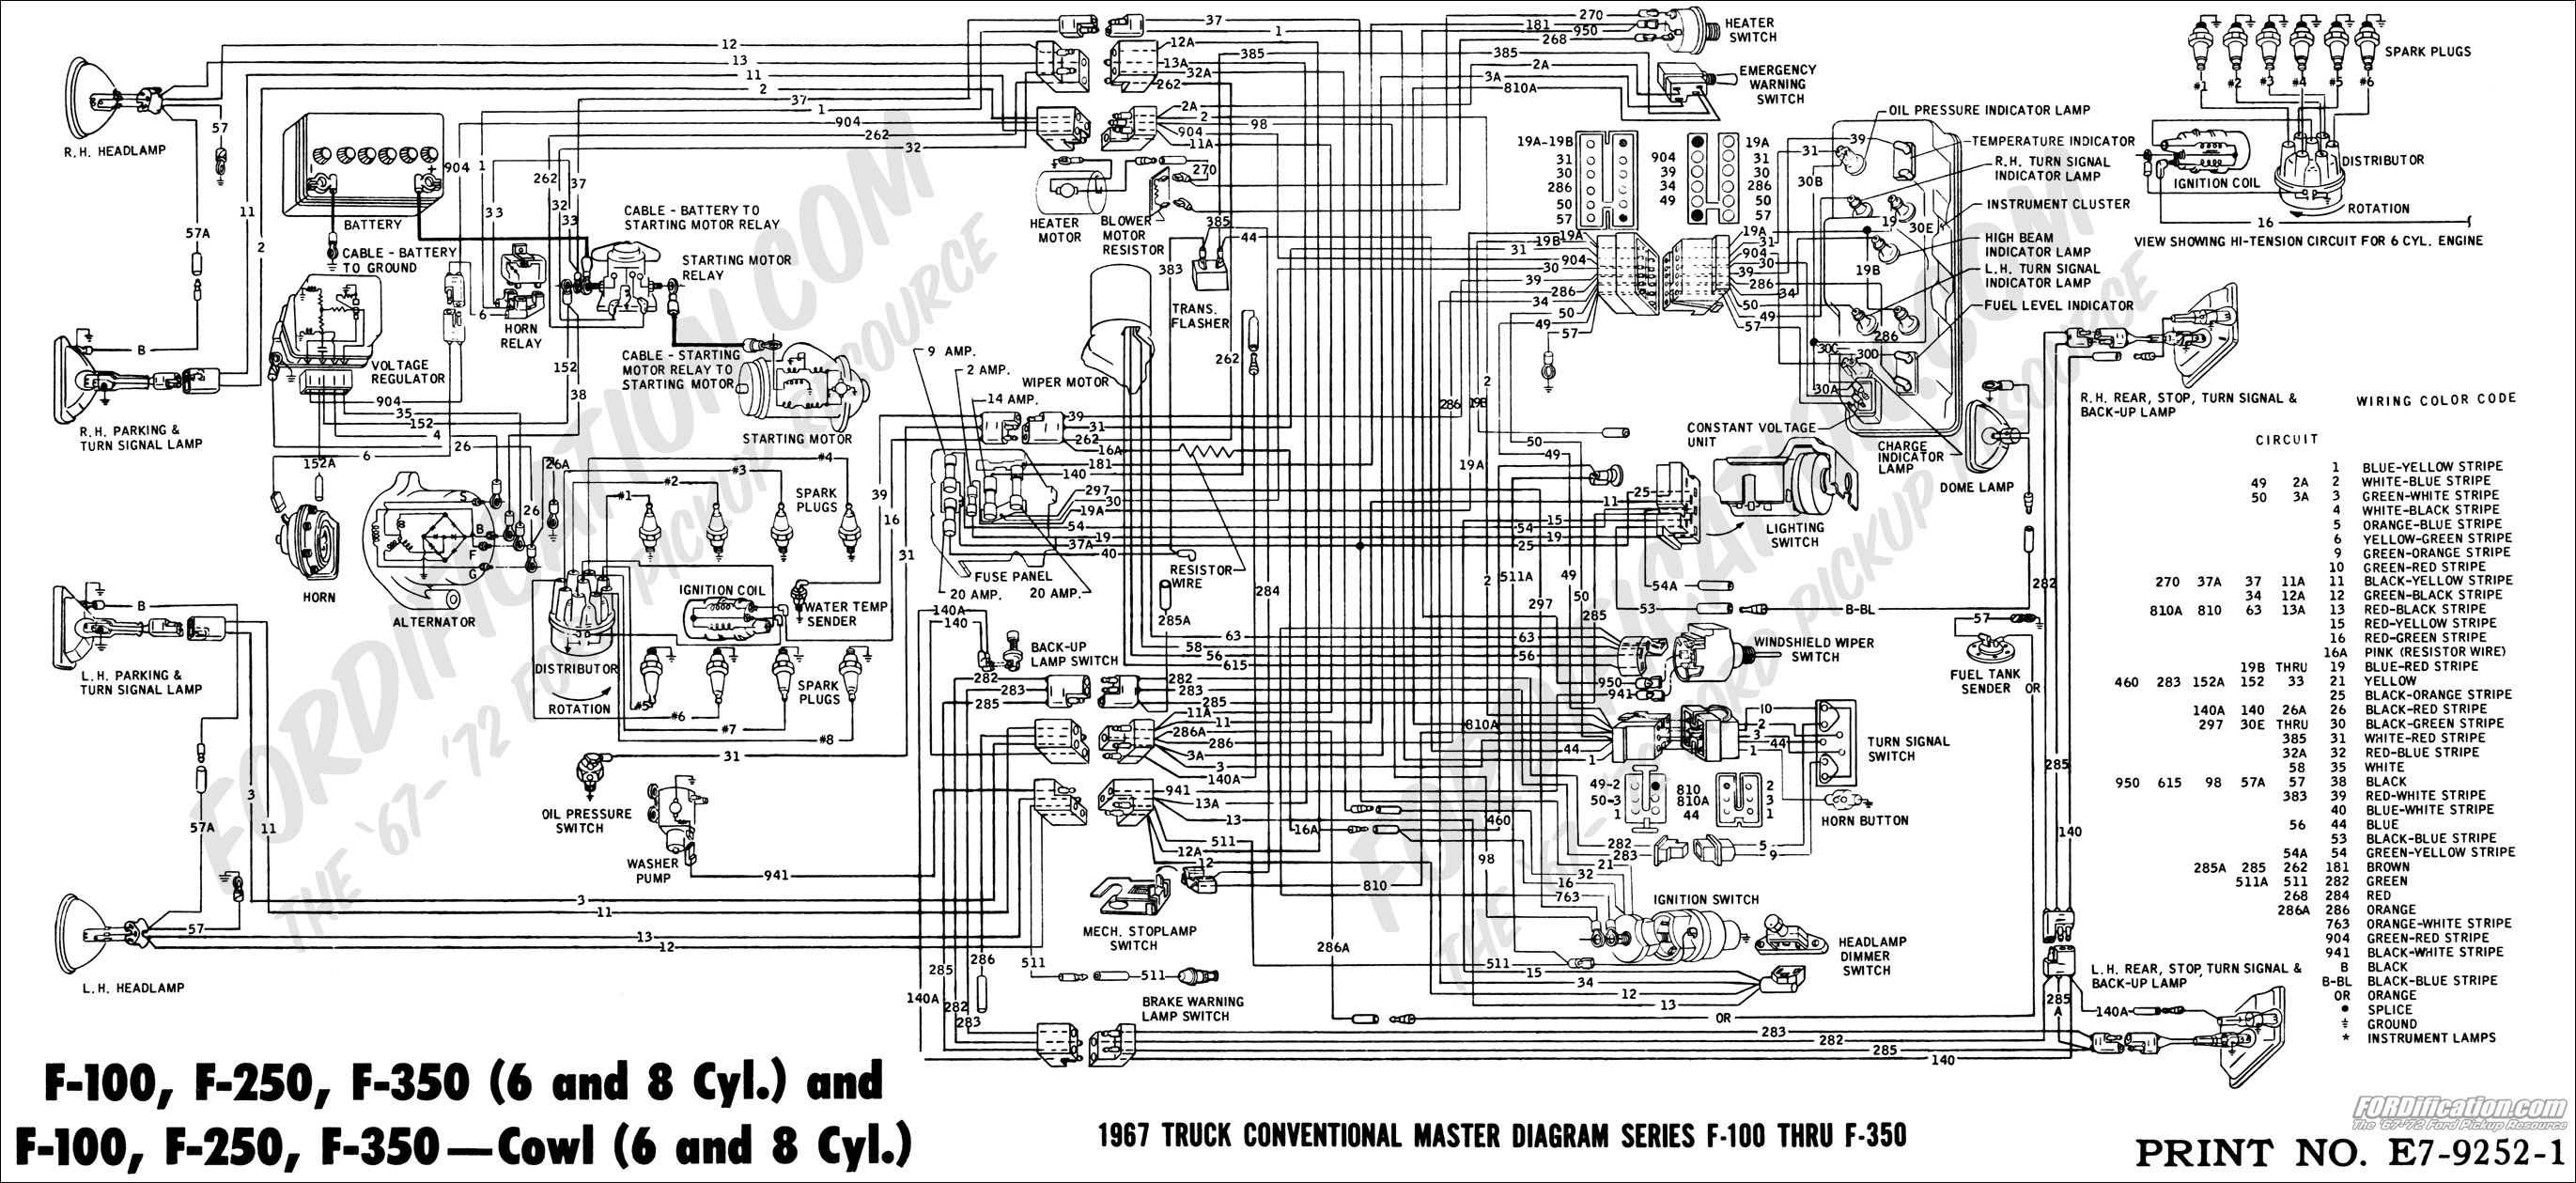 73 Ford Pickup Wiring Diagram - Wiring Diagram Options  Ford F Wiring Diagram on 73 ford f250 steering, 73 ford f250 air conditioning, 73 dodge charger wiring diagram,